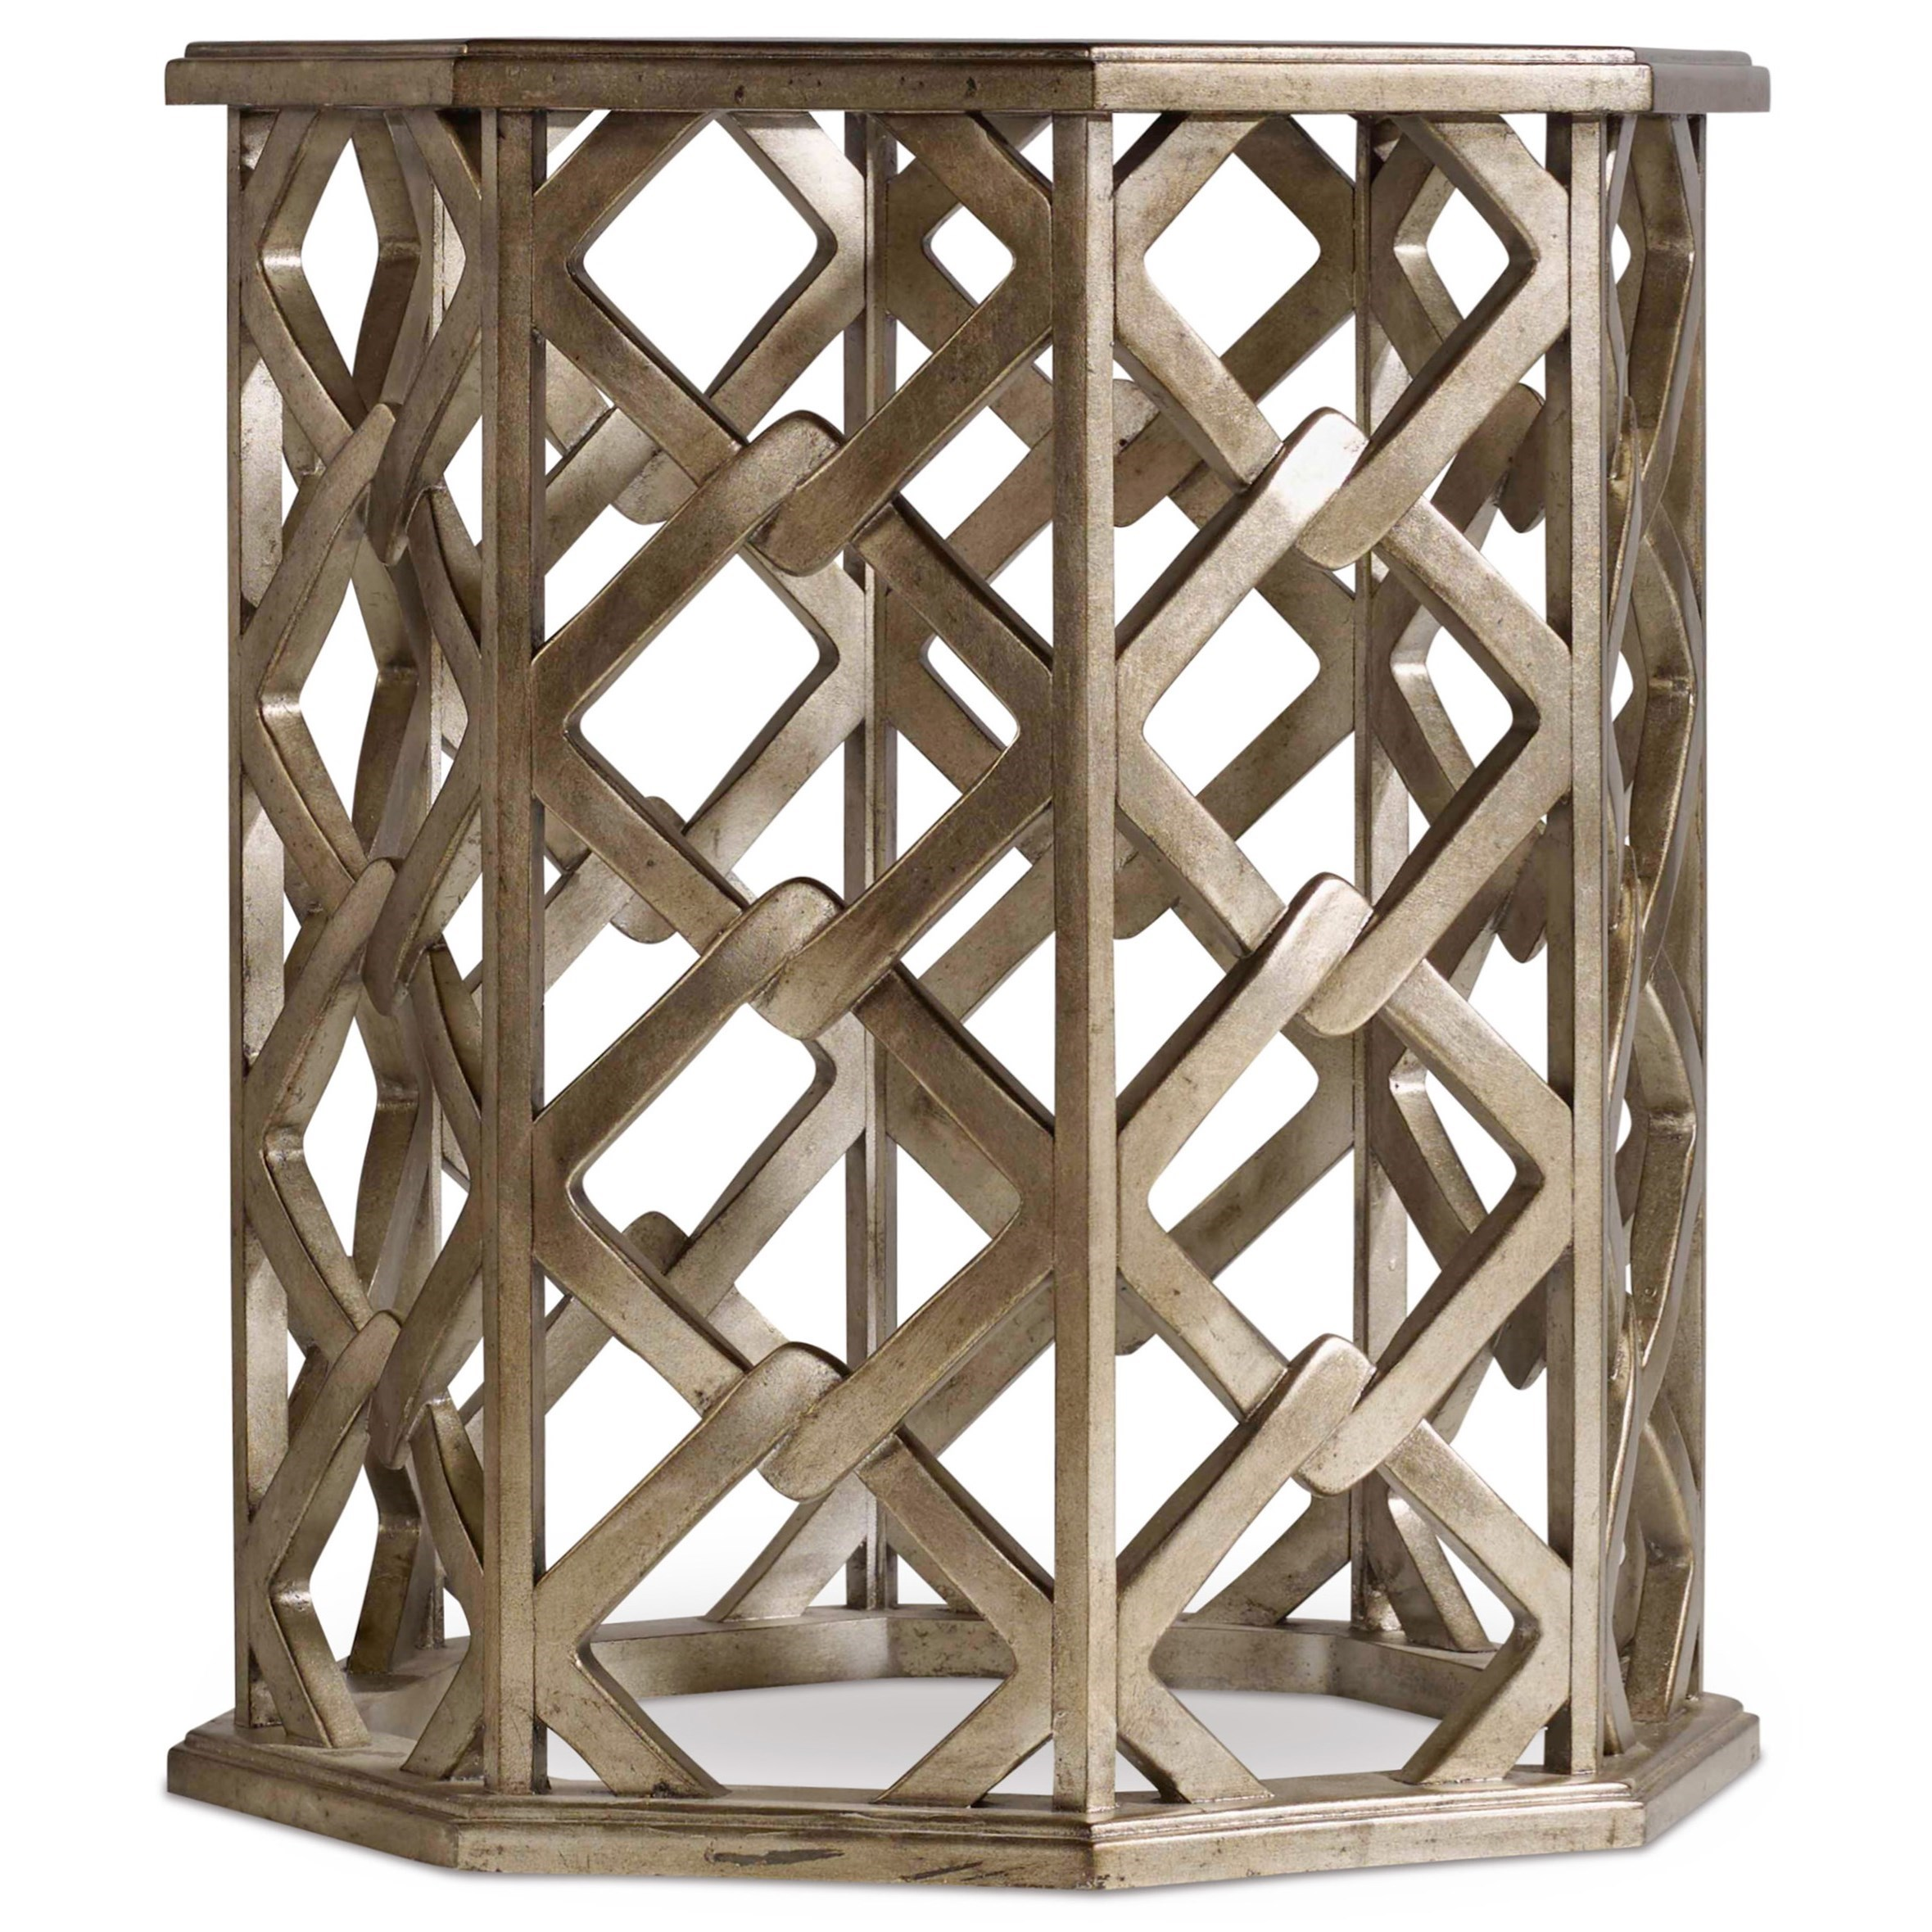 Hooker Furniture Mélange Nico End Table - Item Number: 638-50271